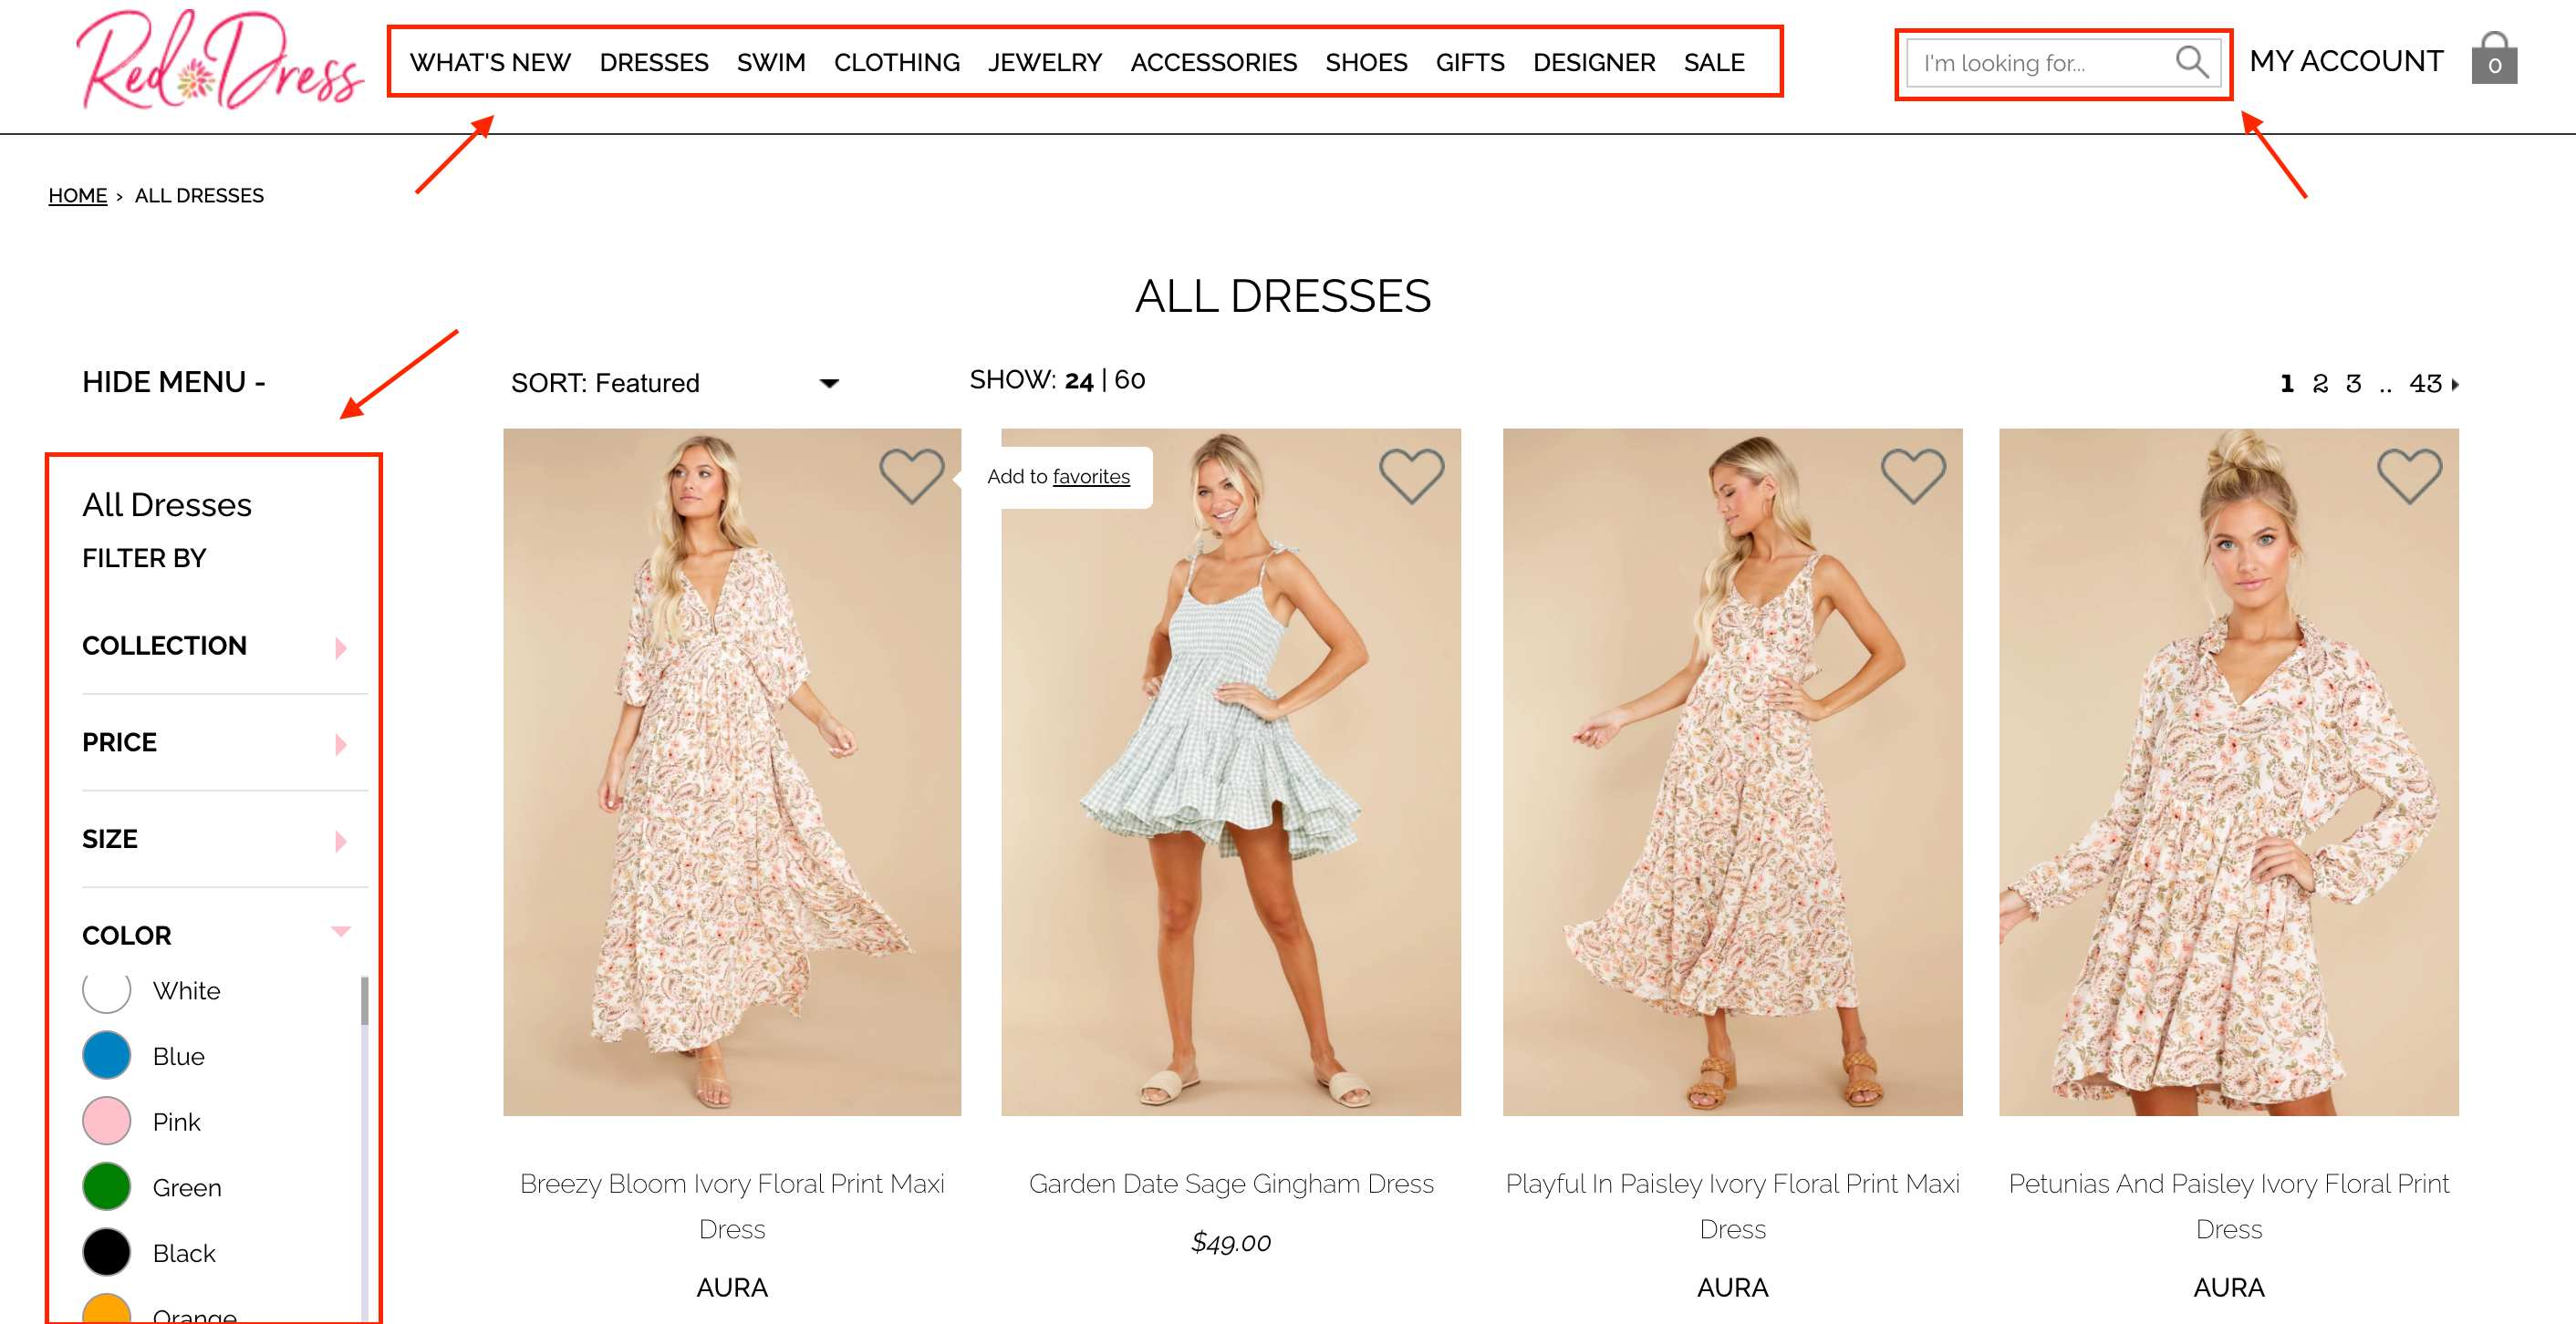 red dress boutique search box and filter tree website conversion rate